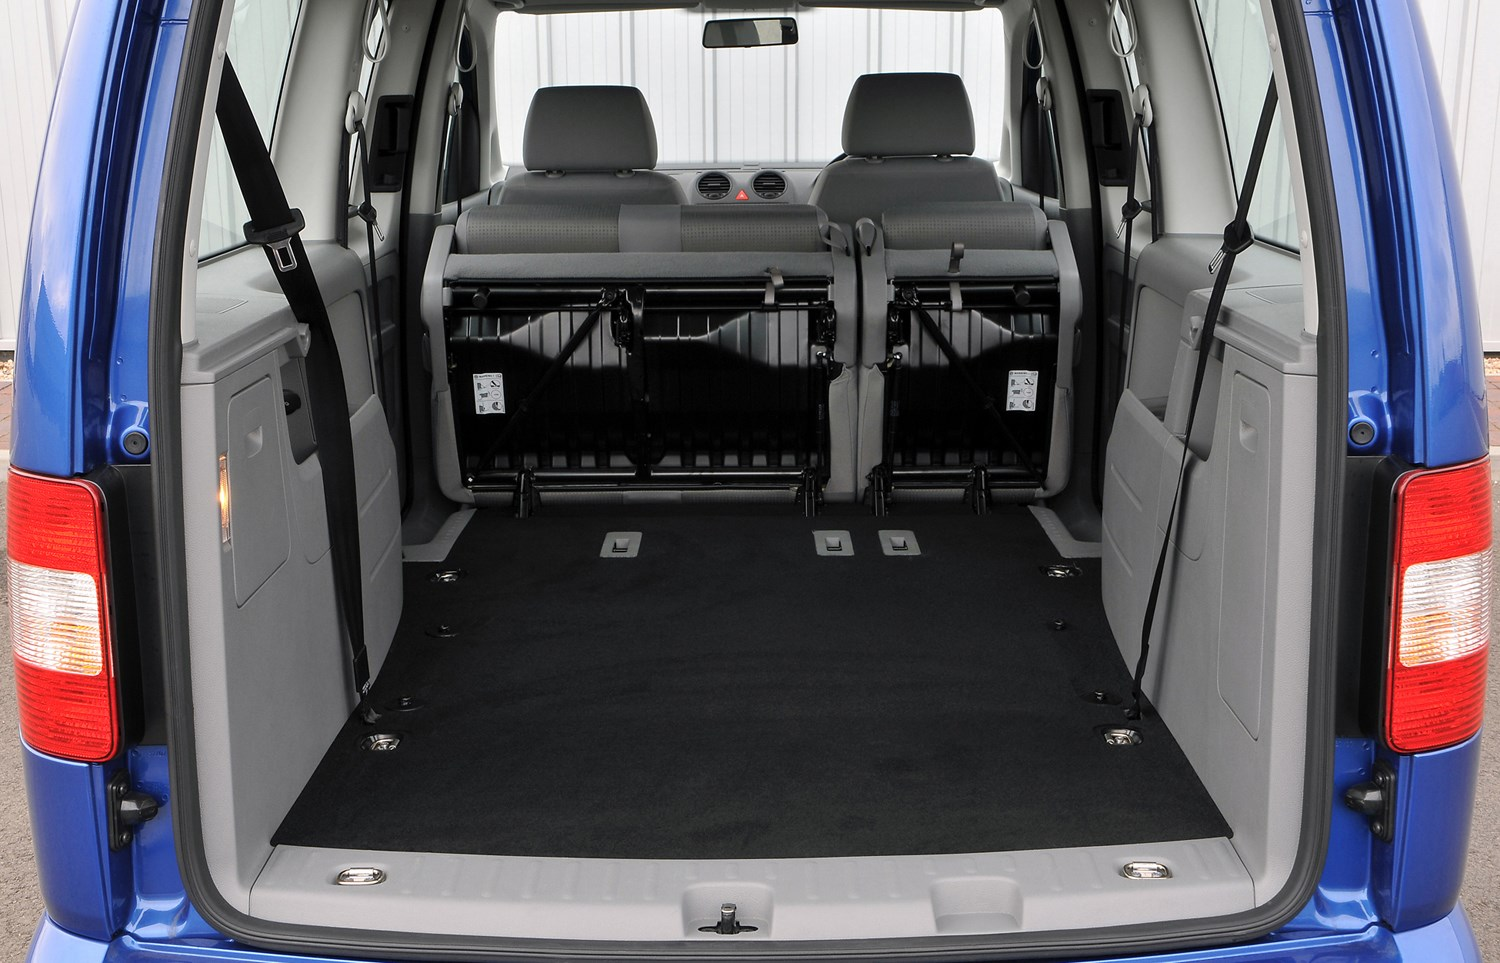 volkswagen caddy maxi life estate 2008 2010 photos. Black Bedroom Furniture Sets. Home Design Ideas